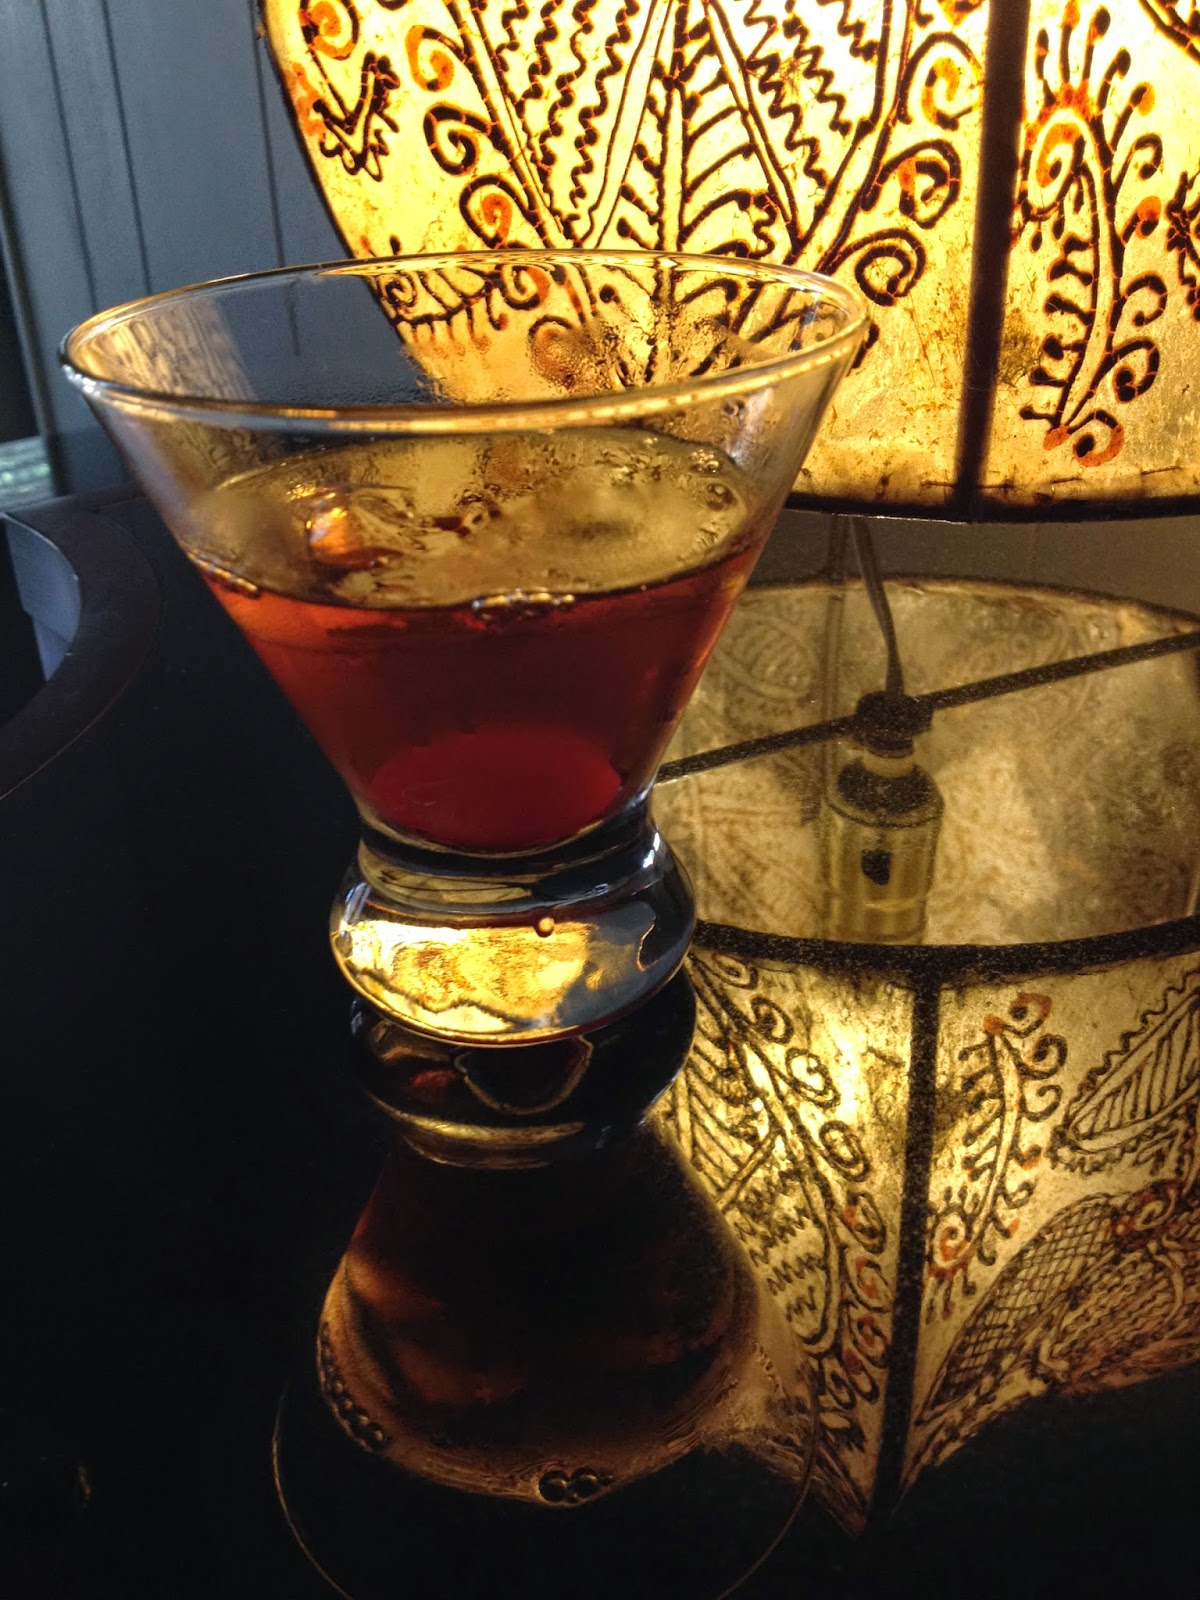 A Manhattan, mixed to perfection